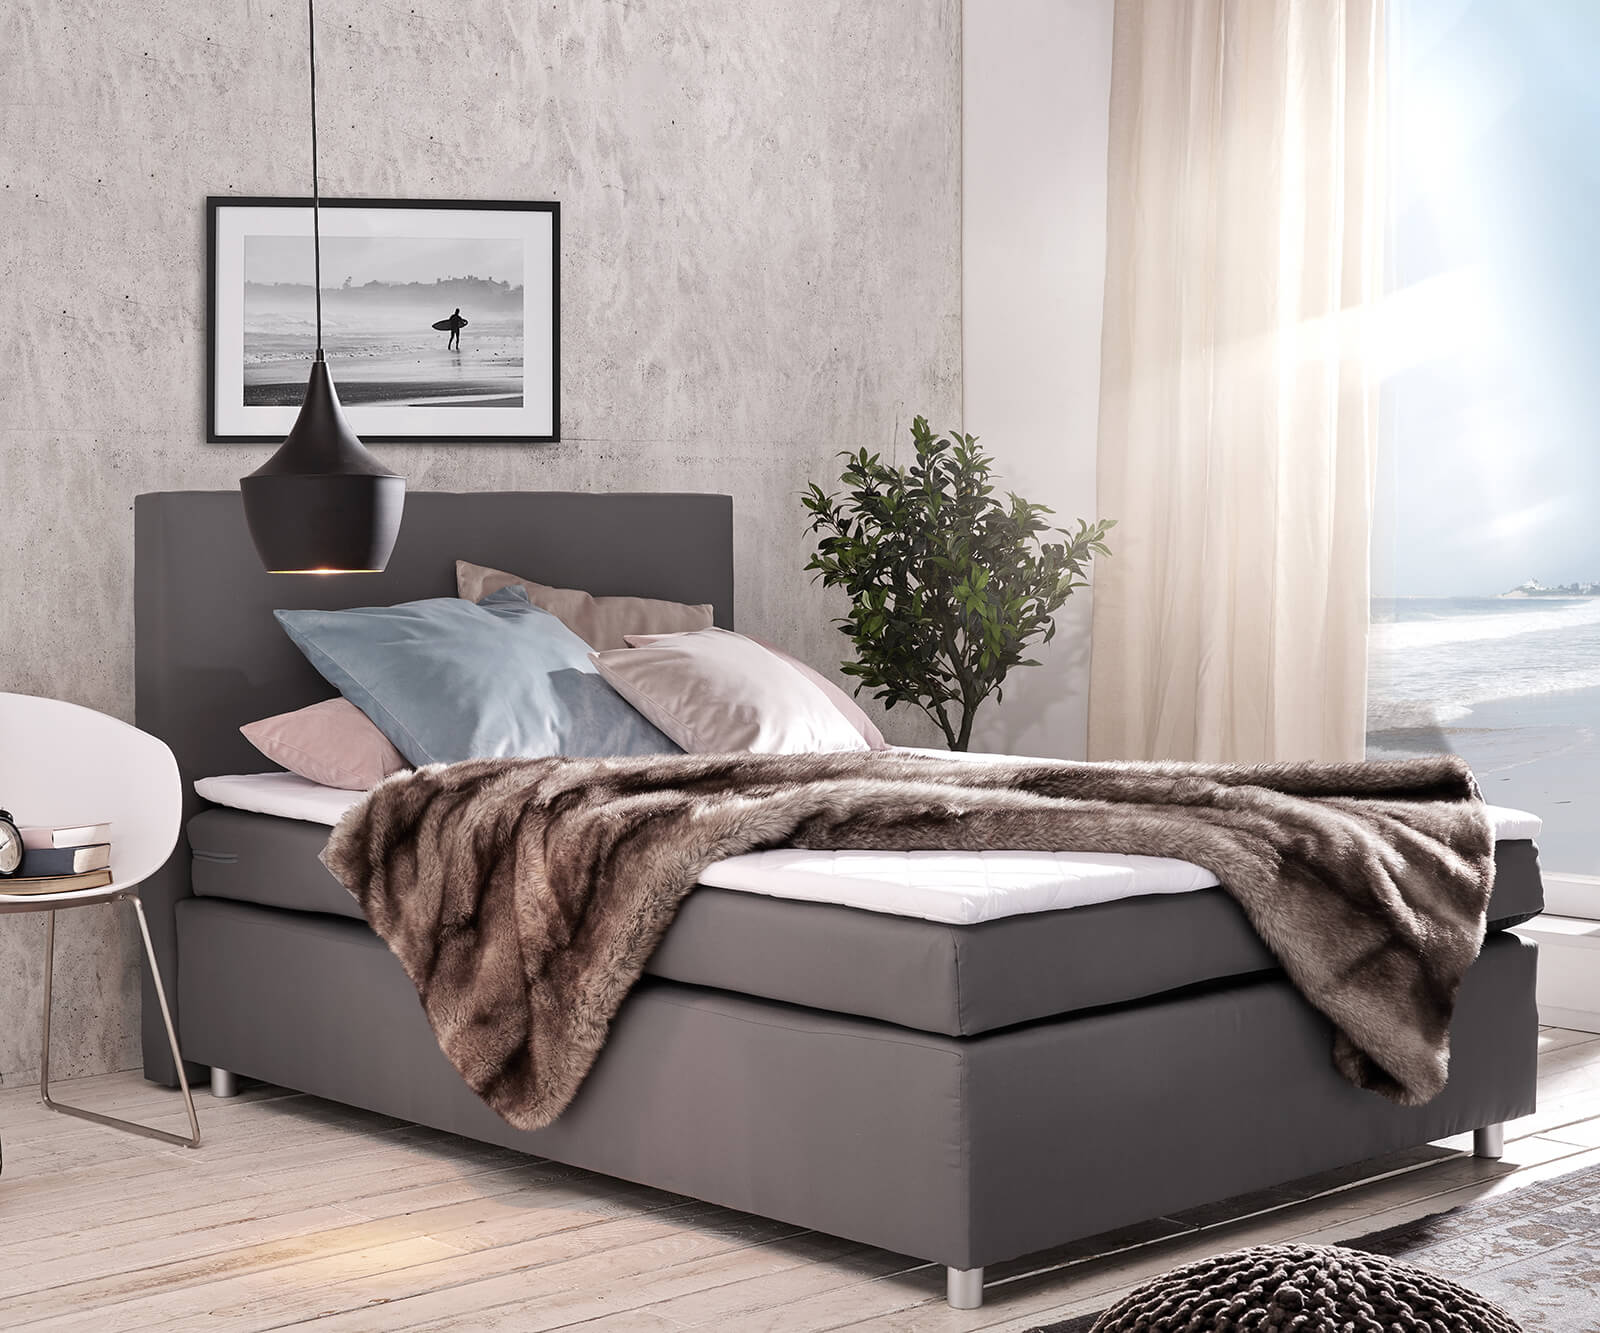 bett paradizo grau 140x200 cm matratze und topper. Black Bedroom Furniture Sets. Home Design Ideas